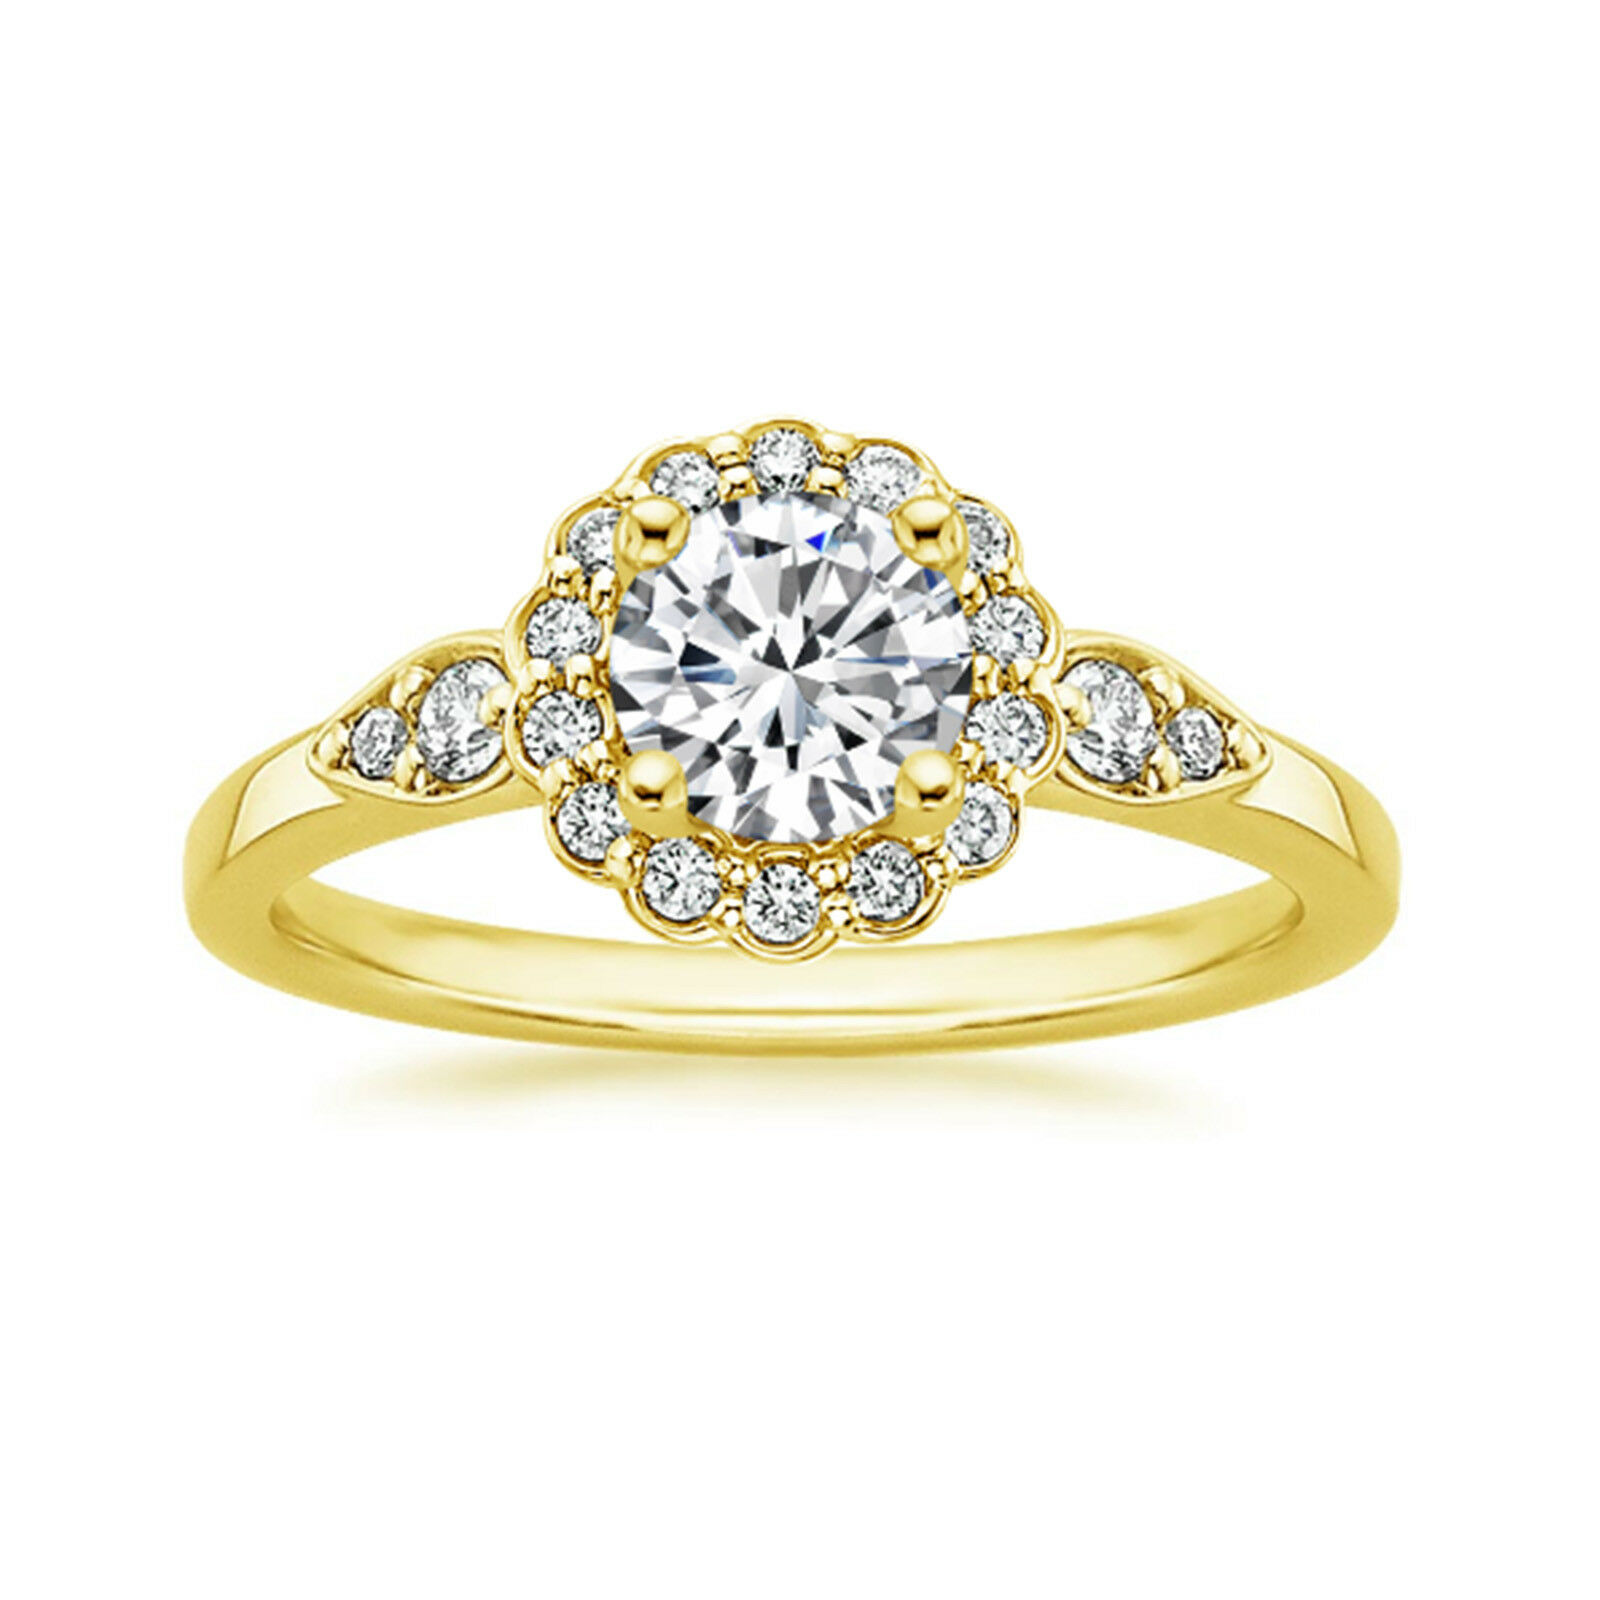 1.30 Ct Round Cut Moissanite Wedding Ring 14K Hallmarked Solid Yellow gold Rings